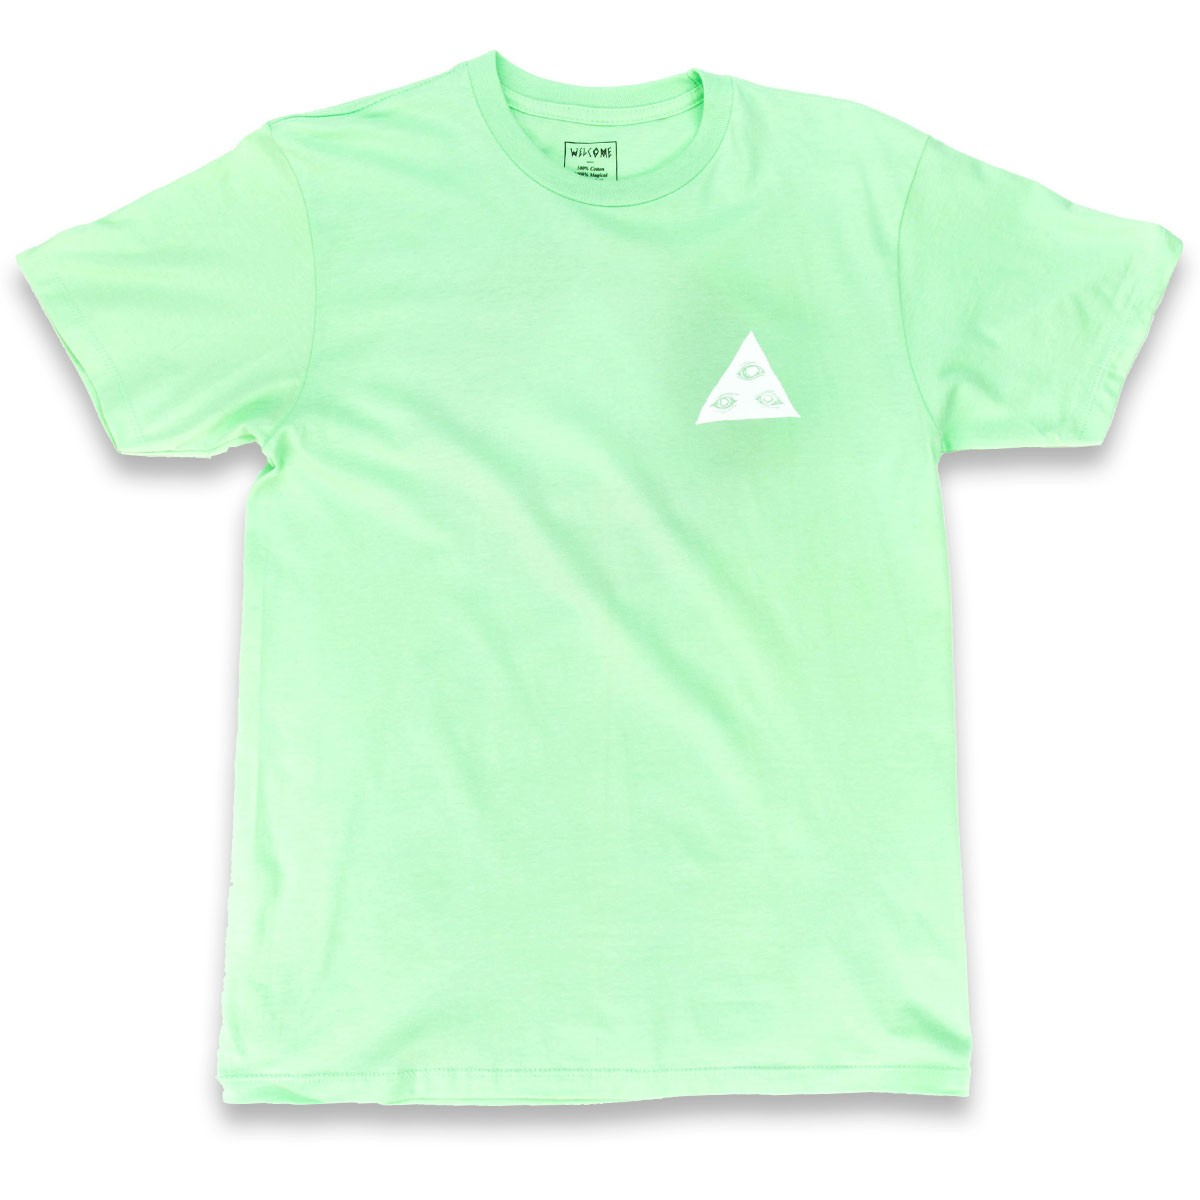 Welcome talisman tri color t shirt mint red white for Mint color t shirt